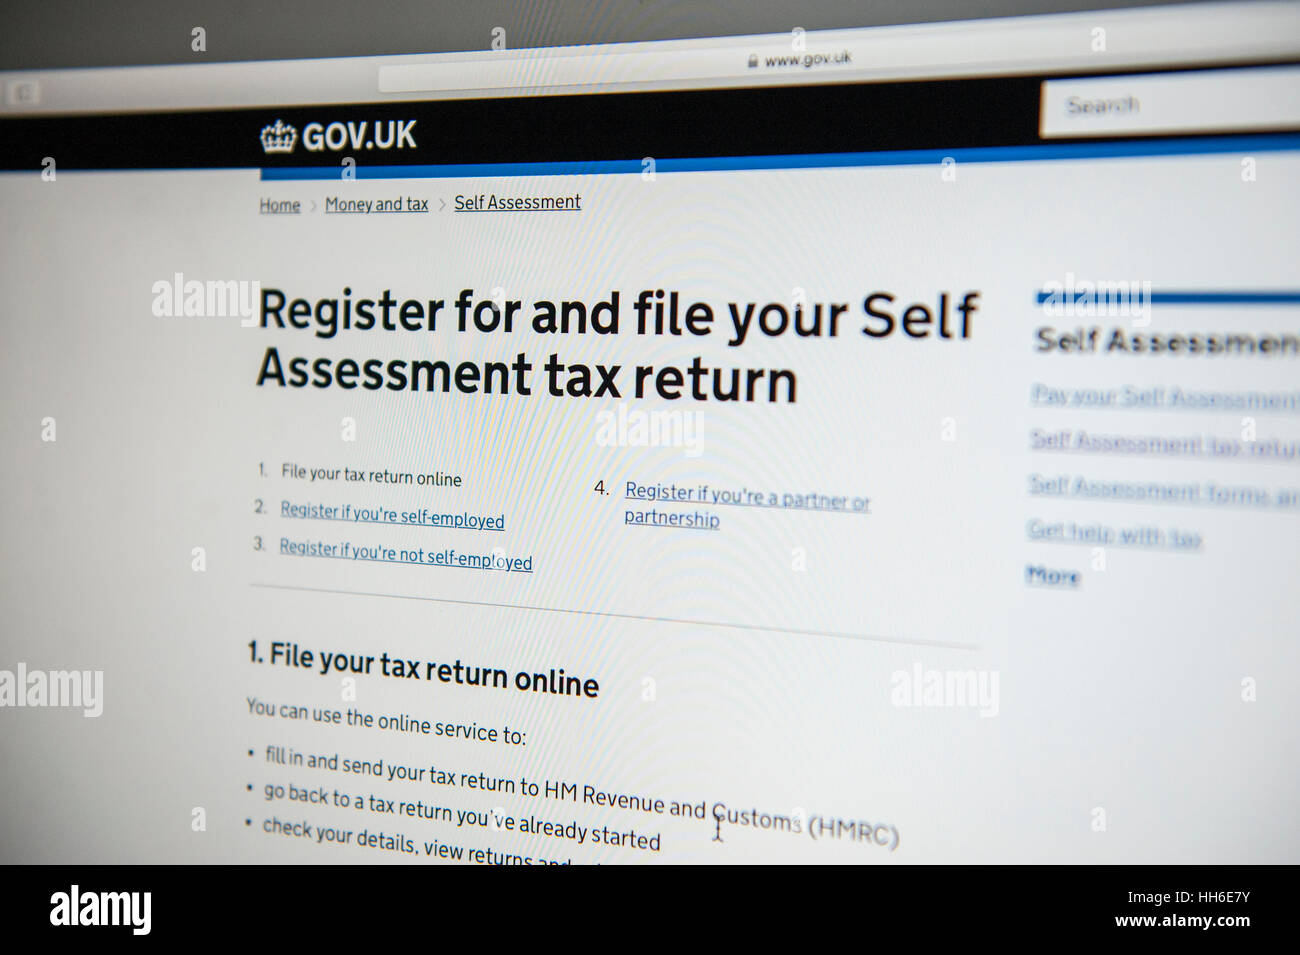 How to Register As Self Employed in UK